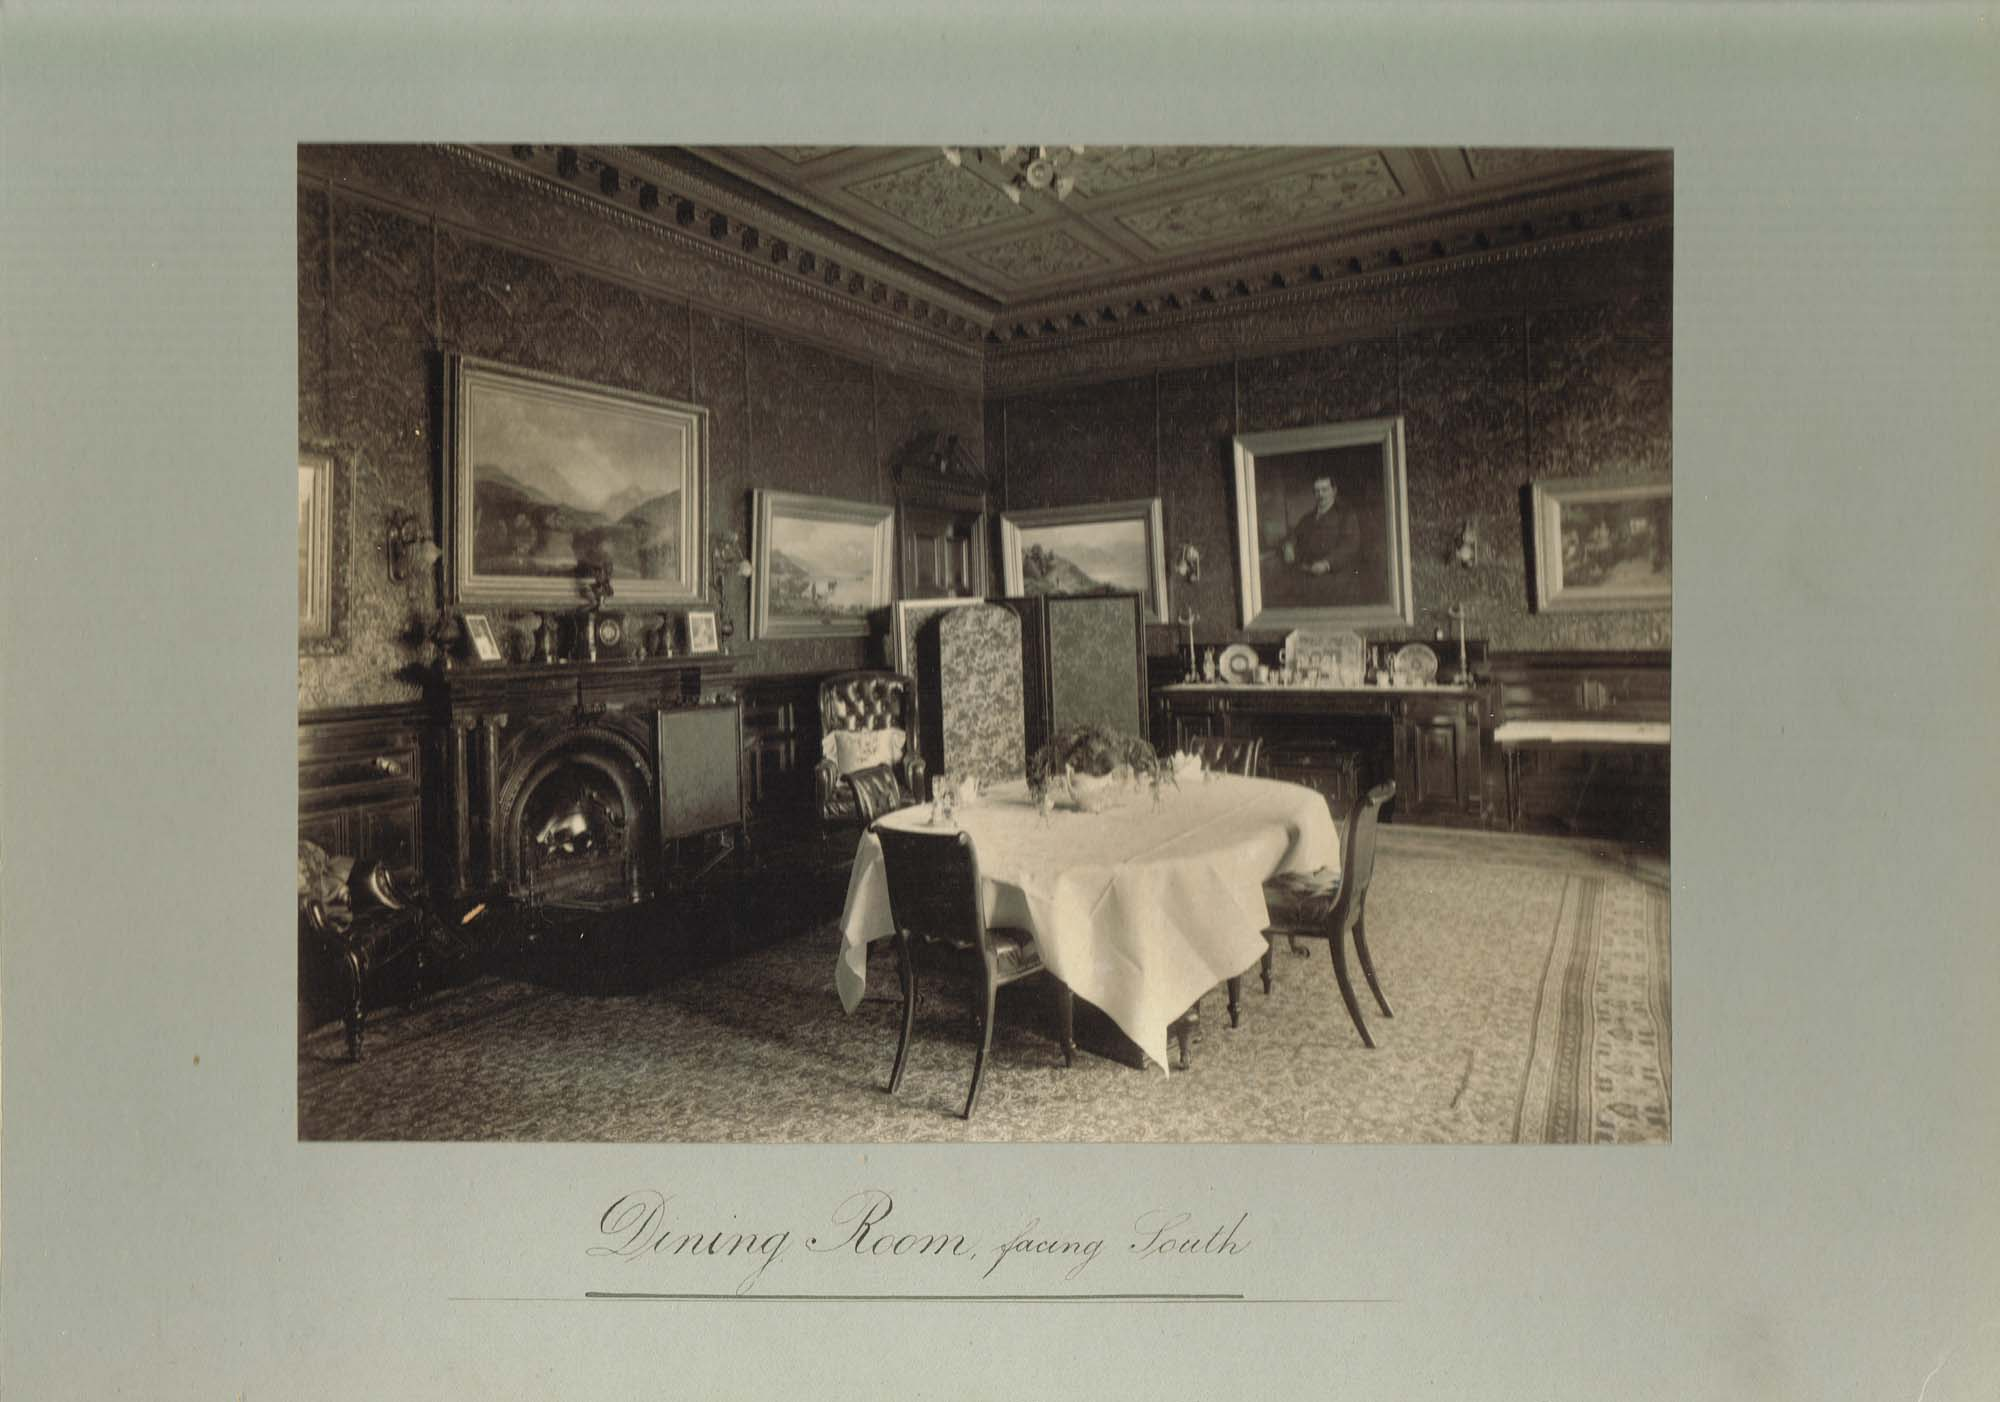 Black and white photograph of the Dining Room at Ralston